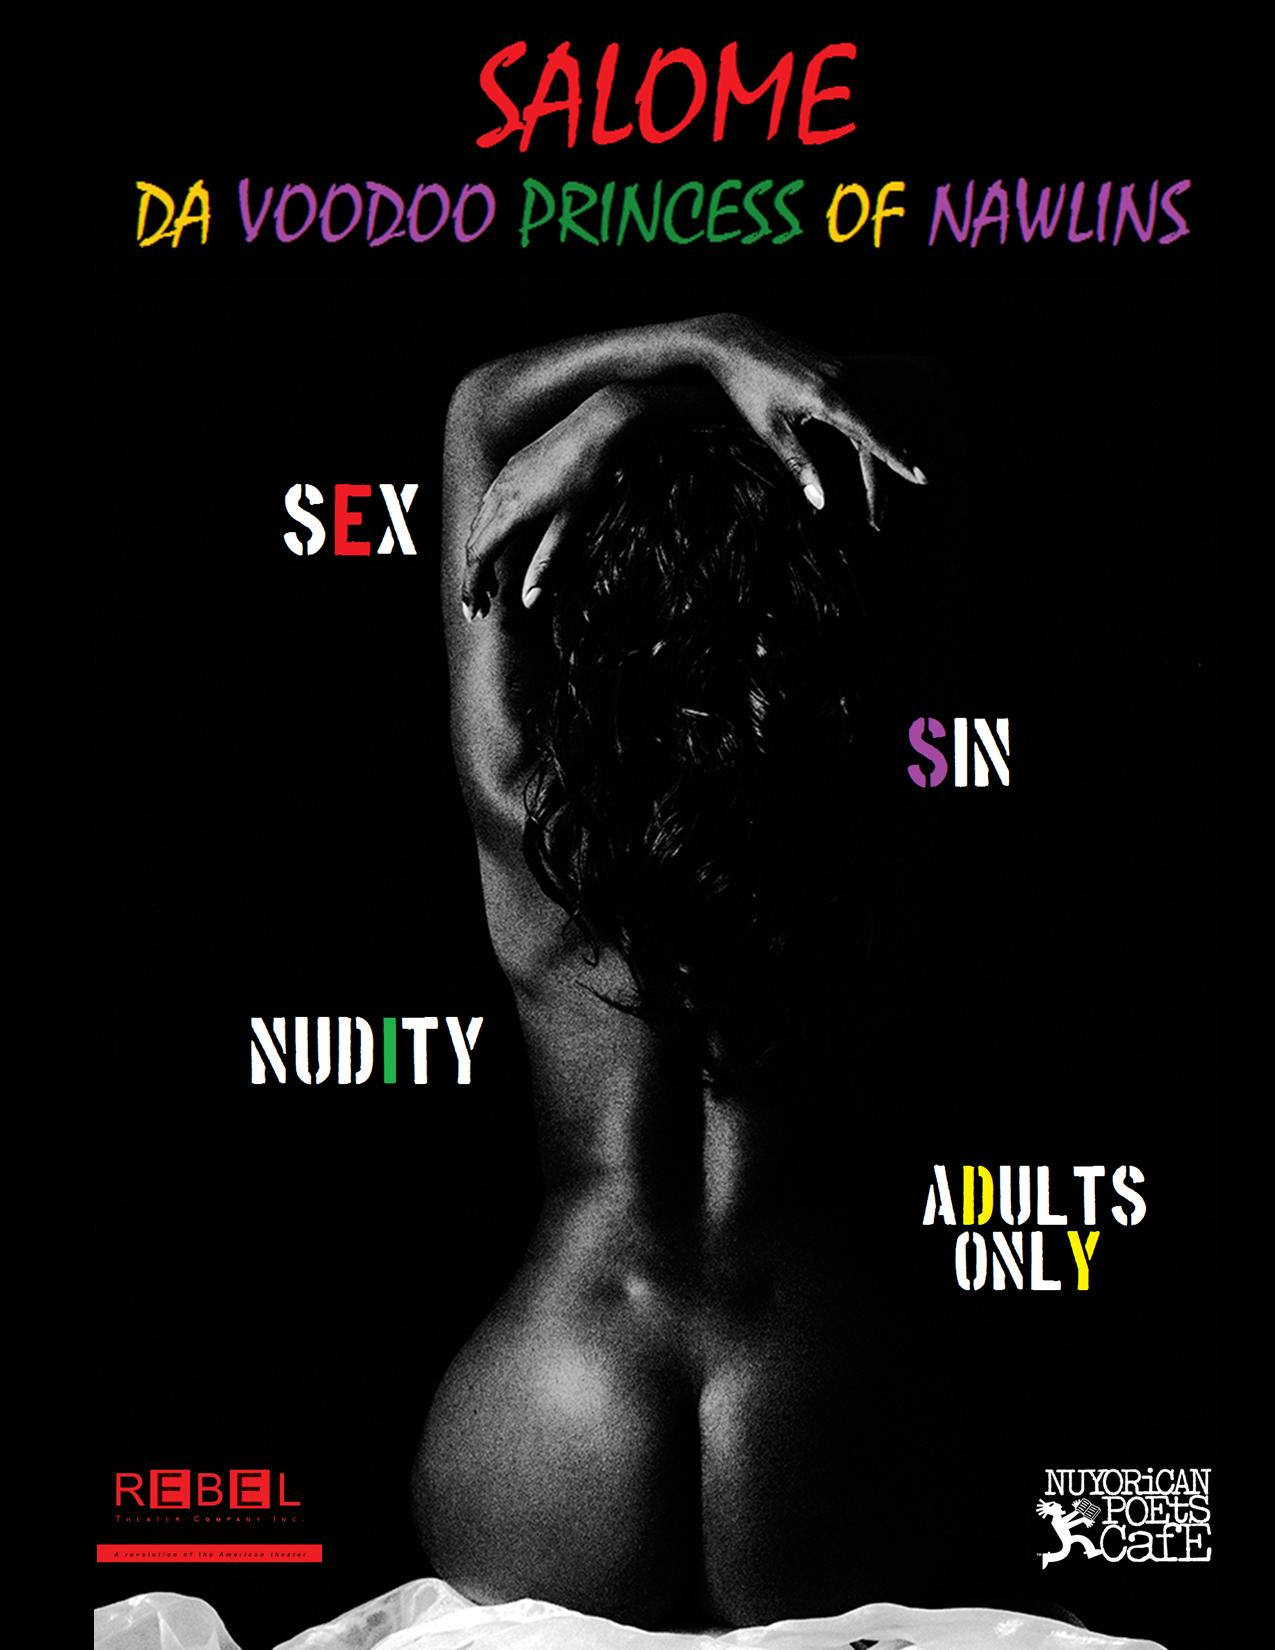 Salome: Da Voodoo Princess of N'Awlins opens at the Nuyorican